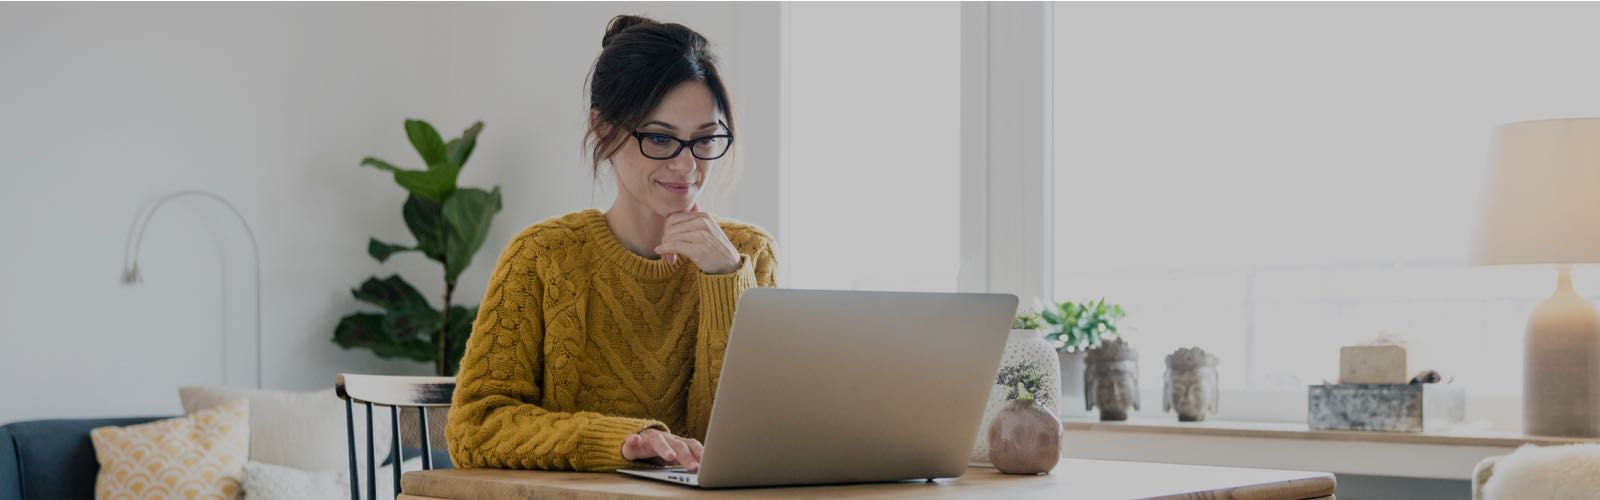 woman in a yellow sweater sitting at a laptop